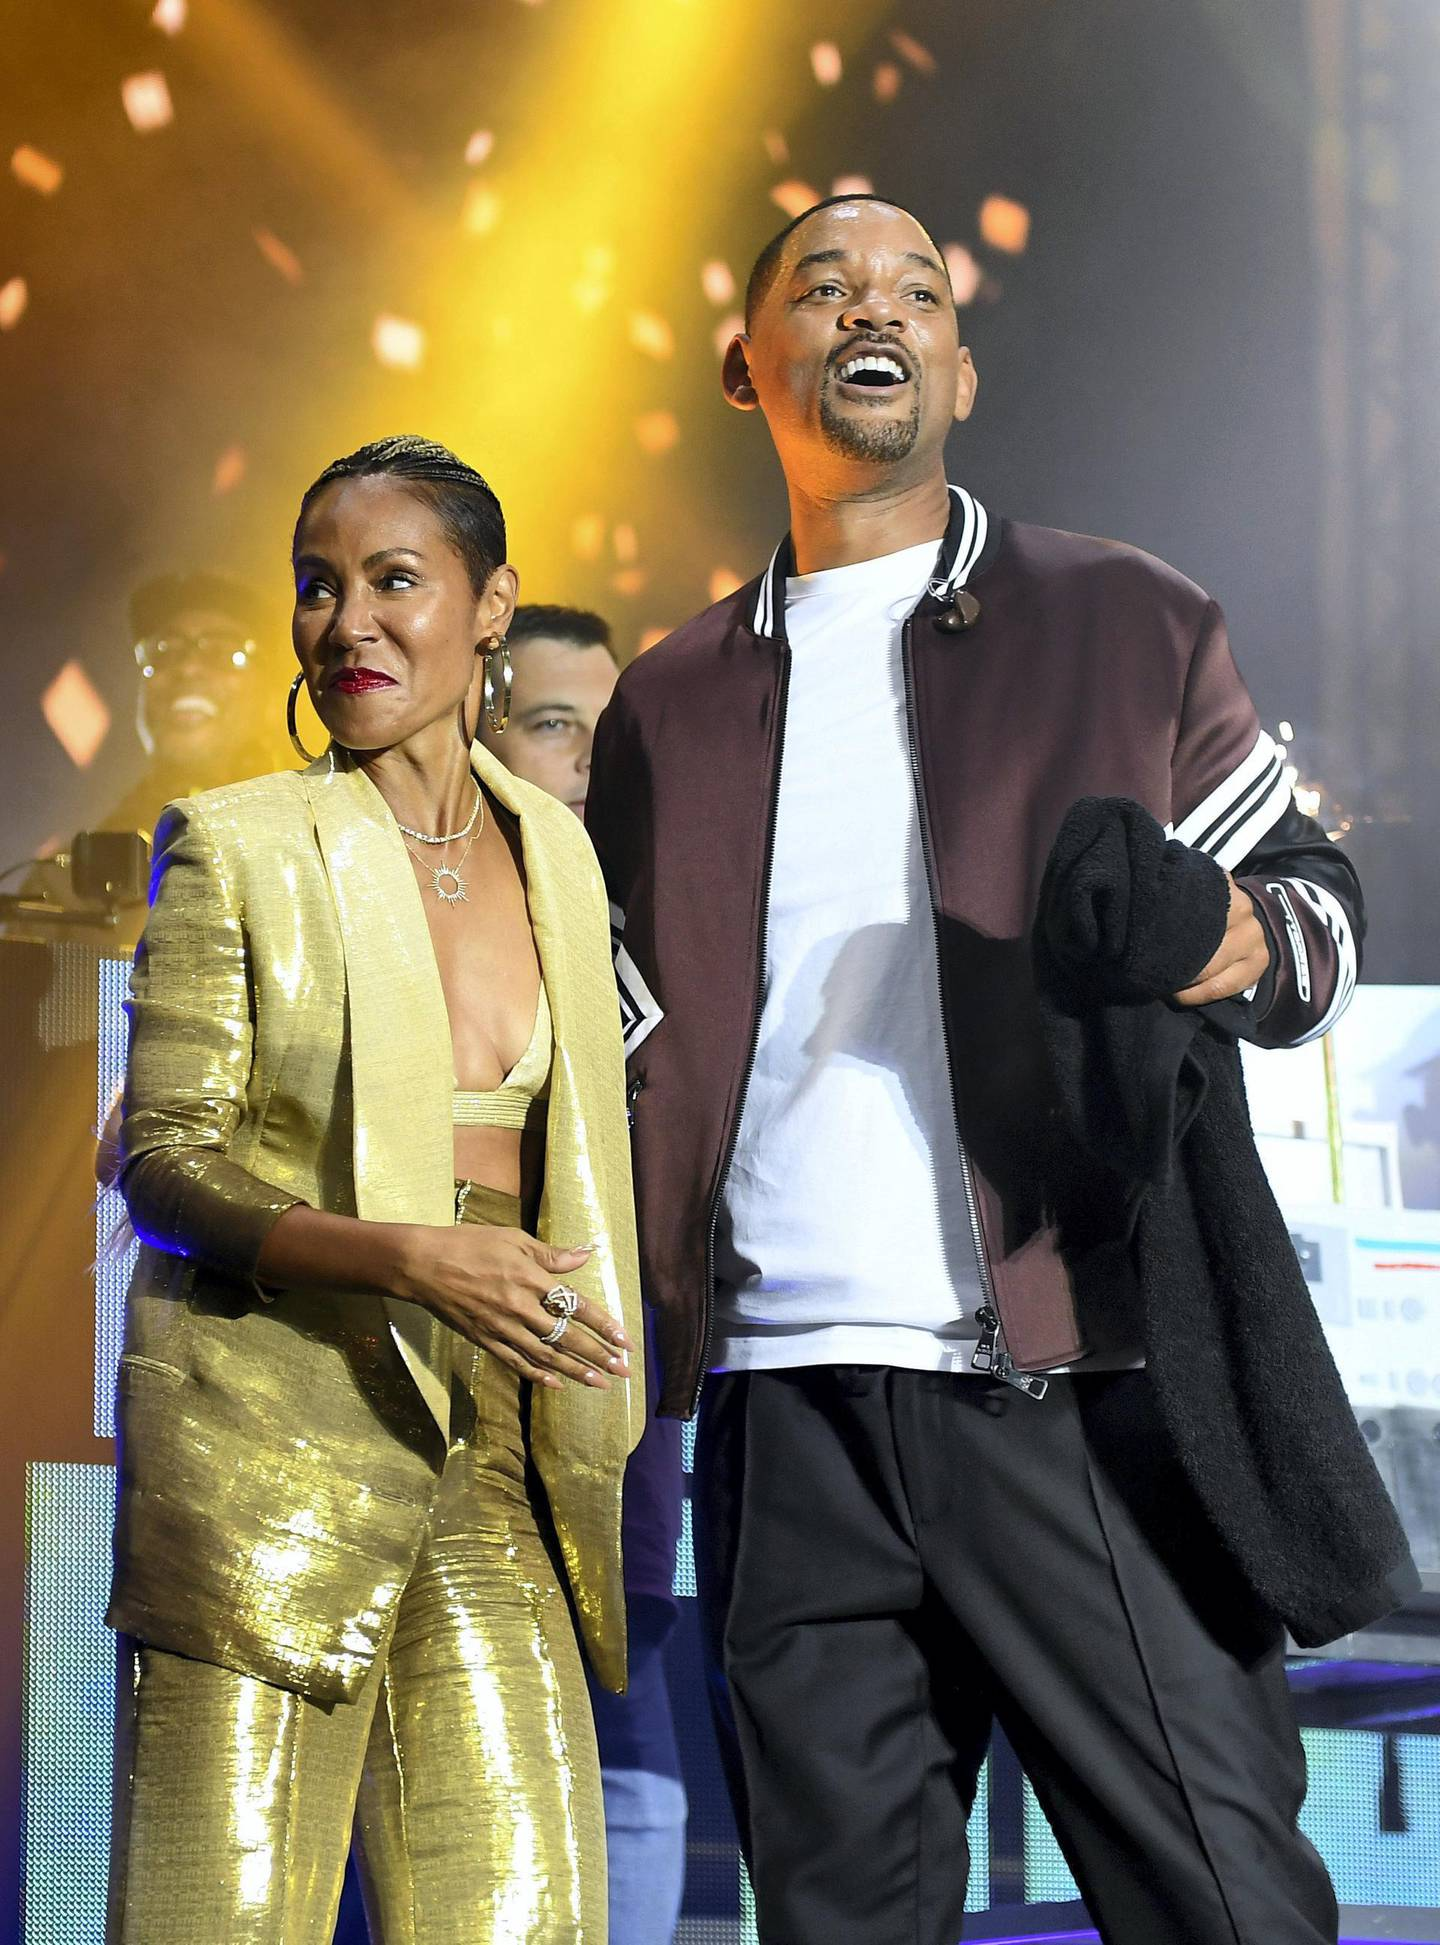 """BUDAPEST, HUNGARY - SEPTEMBER 25: Will Smith and wife Jada Pinkett Smith on stage during the Paramount Pictures, Skydance and Jerry Bruckheimer Films """"Gemini Man"""" Budapest concert at St Stephens Basilica Square on September 25, 2019 in Budapest, Hungary. (Photo by Ian Gavan/Getty Images for Paramount Pictures)"""